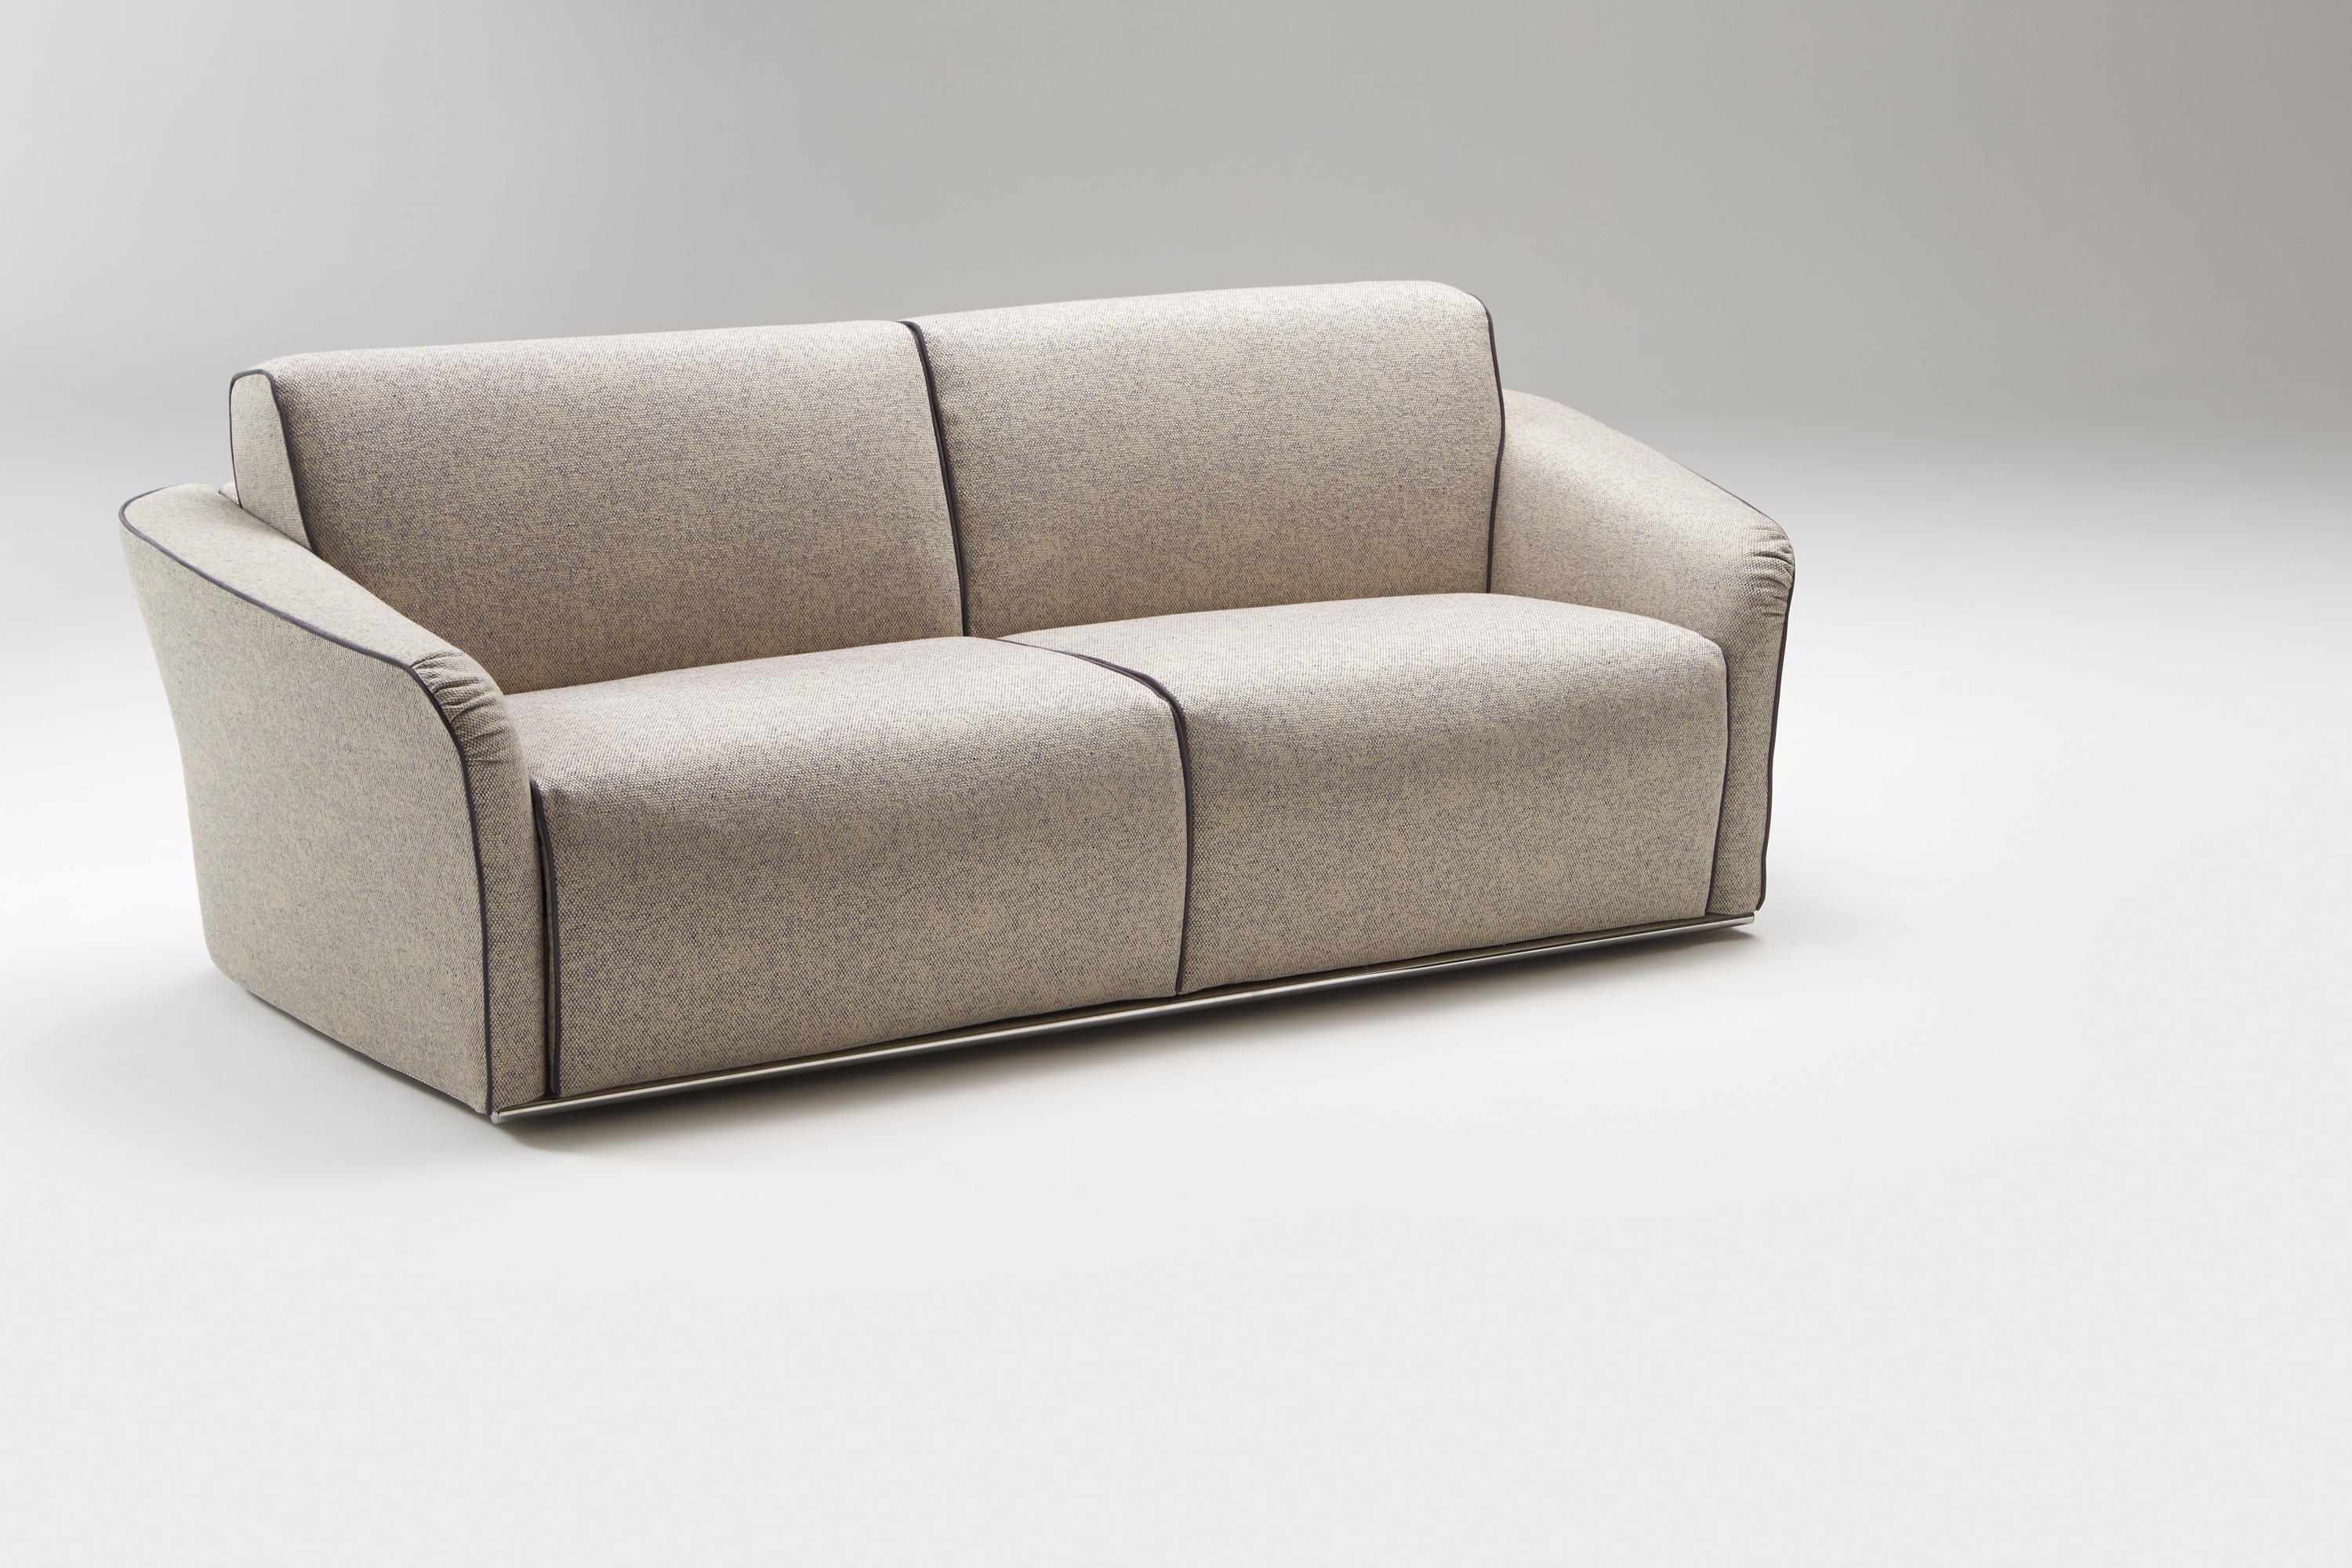 Groove By Milano Bedding Sofa Beds